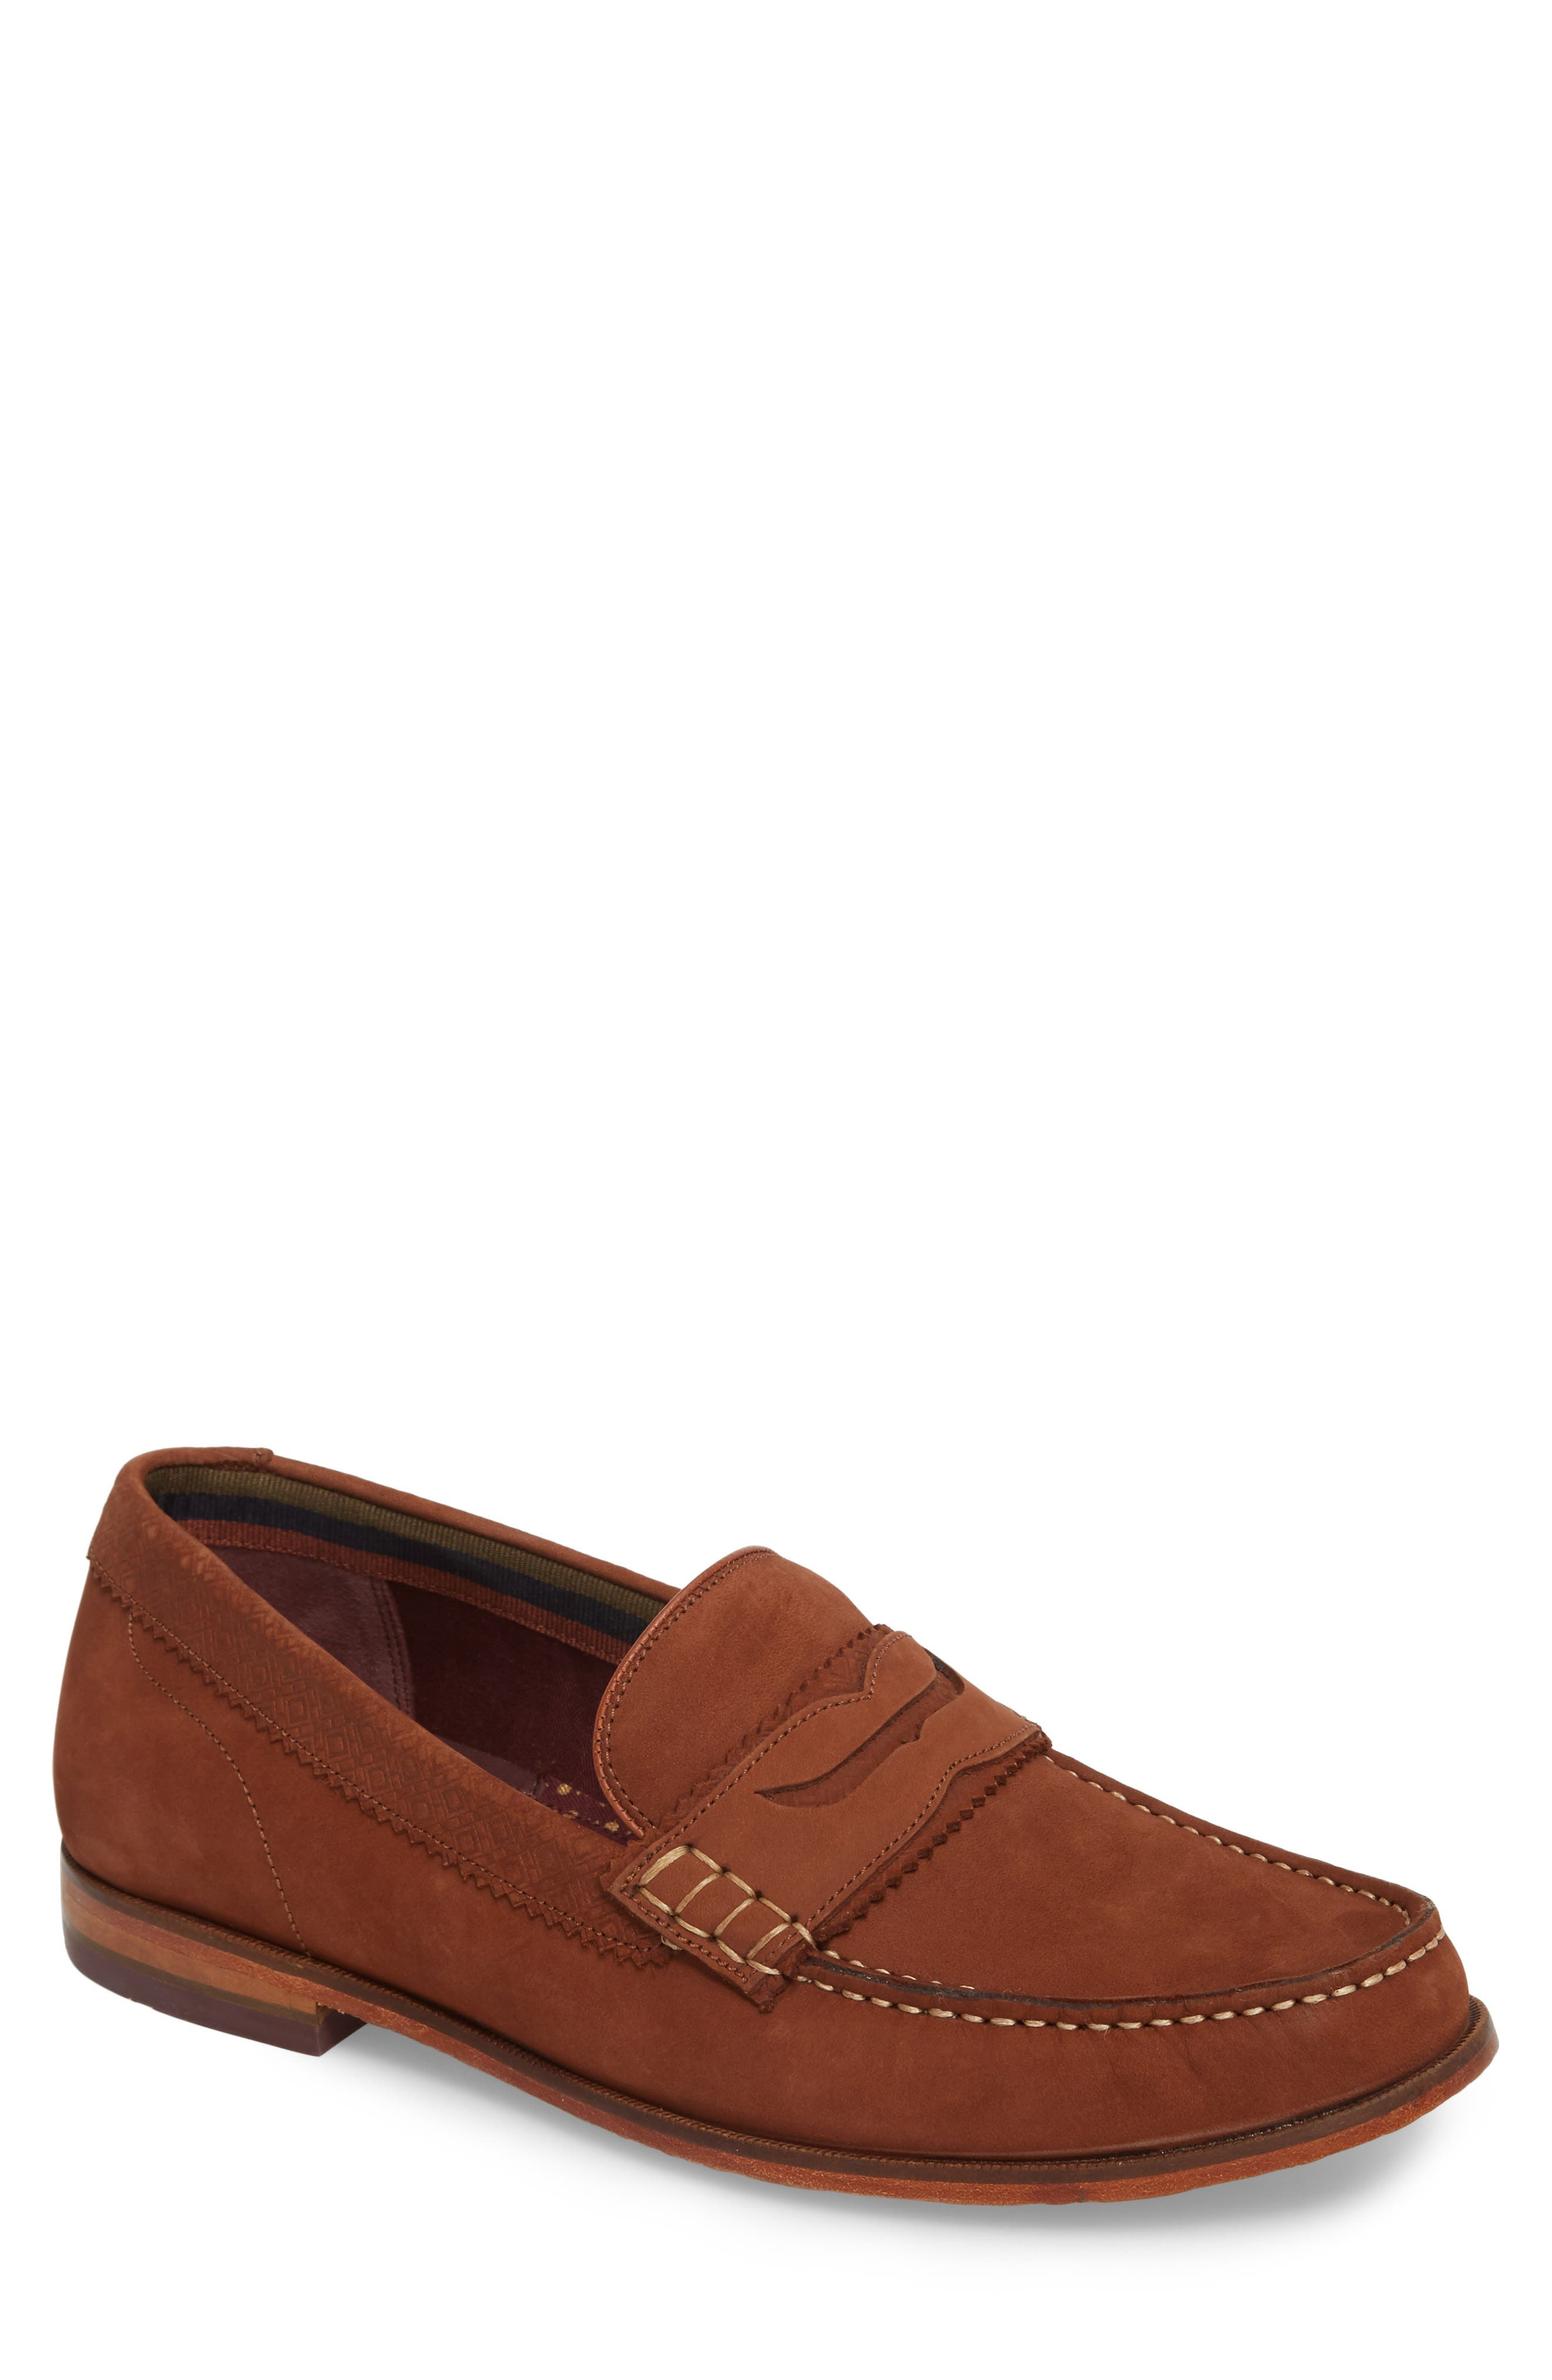 Miicke 5 Penny Loafer,                             Main thumbnail 1, color,                             209